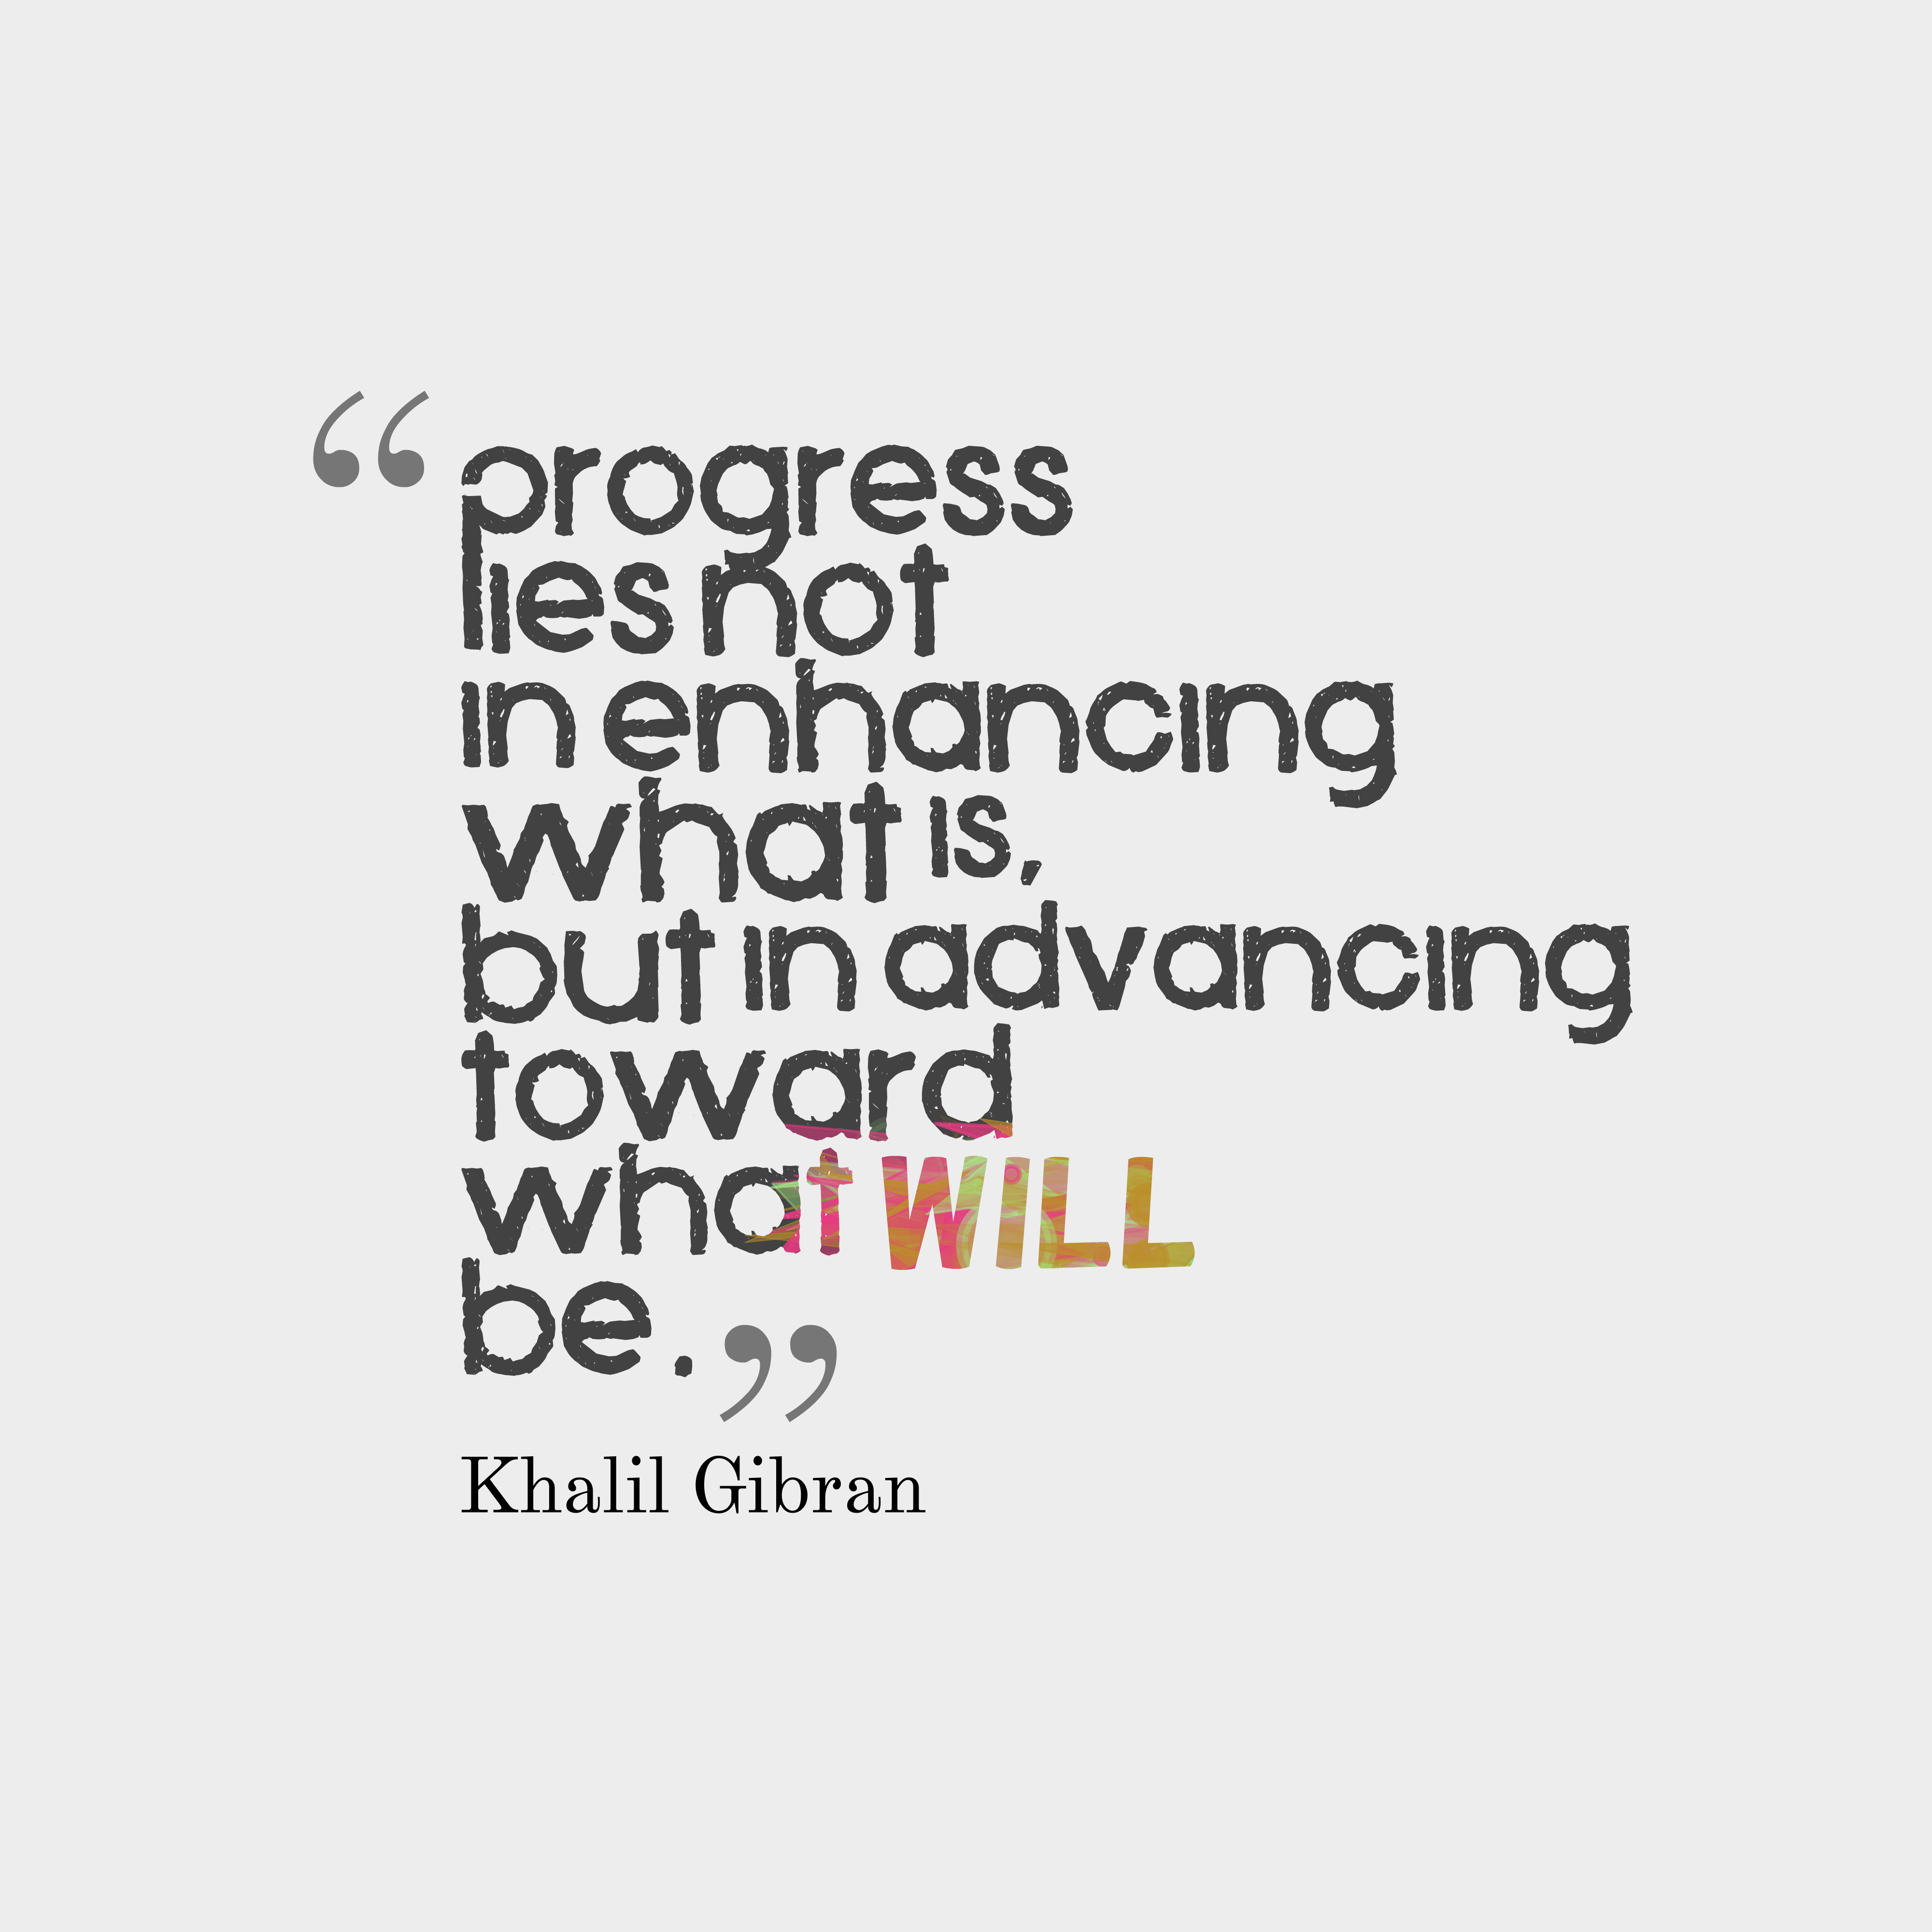 Quotes About Progress Pinnancy Fernandez On Quotes  Pinterest  Progress Quotes And